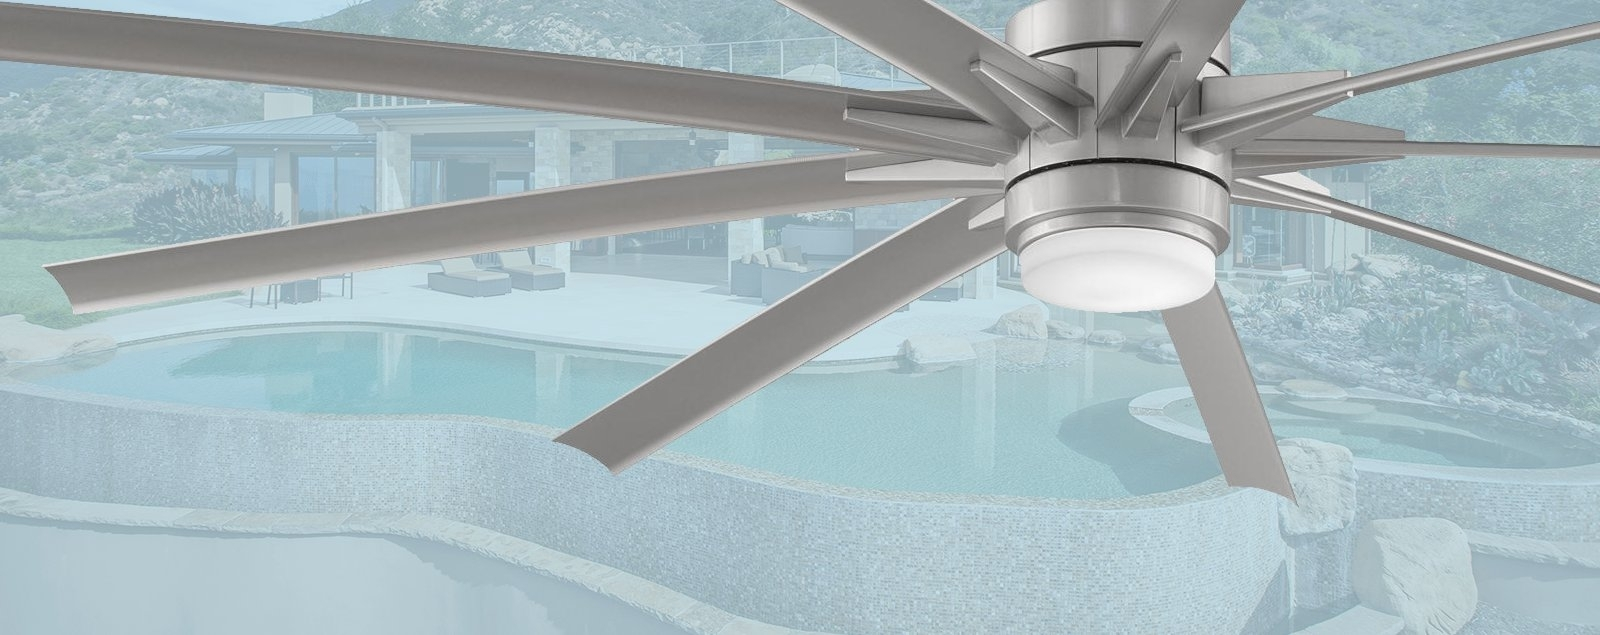 "Recent Large Outdoor Ceiling Fans With Lights Regarding Large Outdoor Ceiling Fans – Outdoor Fans Over 60"" In Diameter (Gallery 15 of 20)"